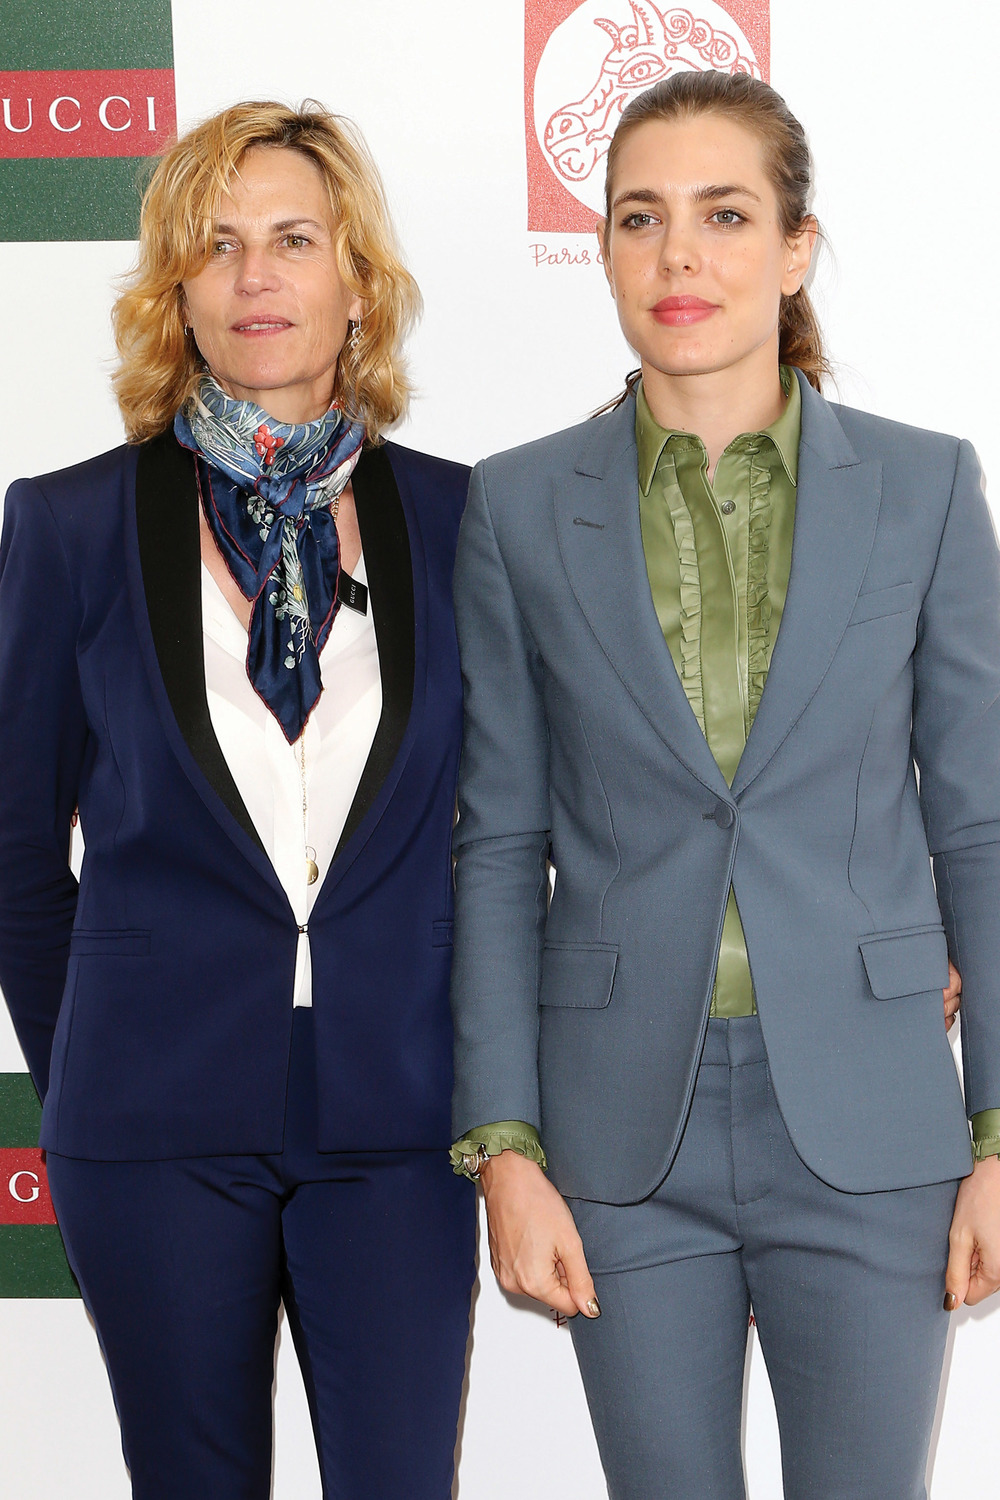 Couperie-Eiffel with Charlotte Casiraghi, the glamorous Monegasque princess (fifth-in-line to the throne of Monaco) was among competitors at last year's Paris Eiffel Jumping event.